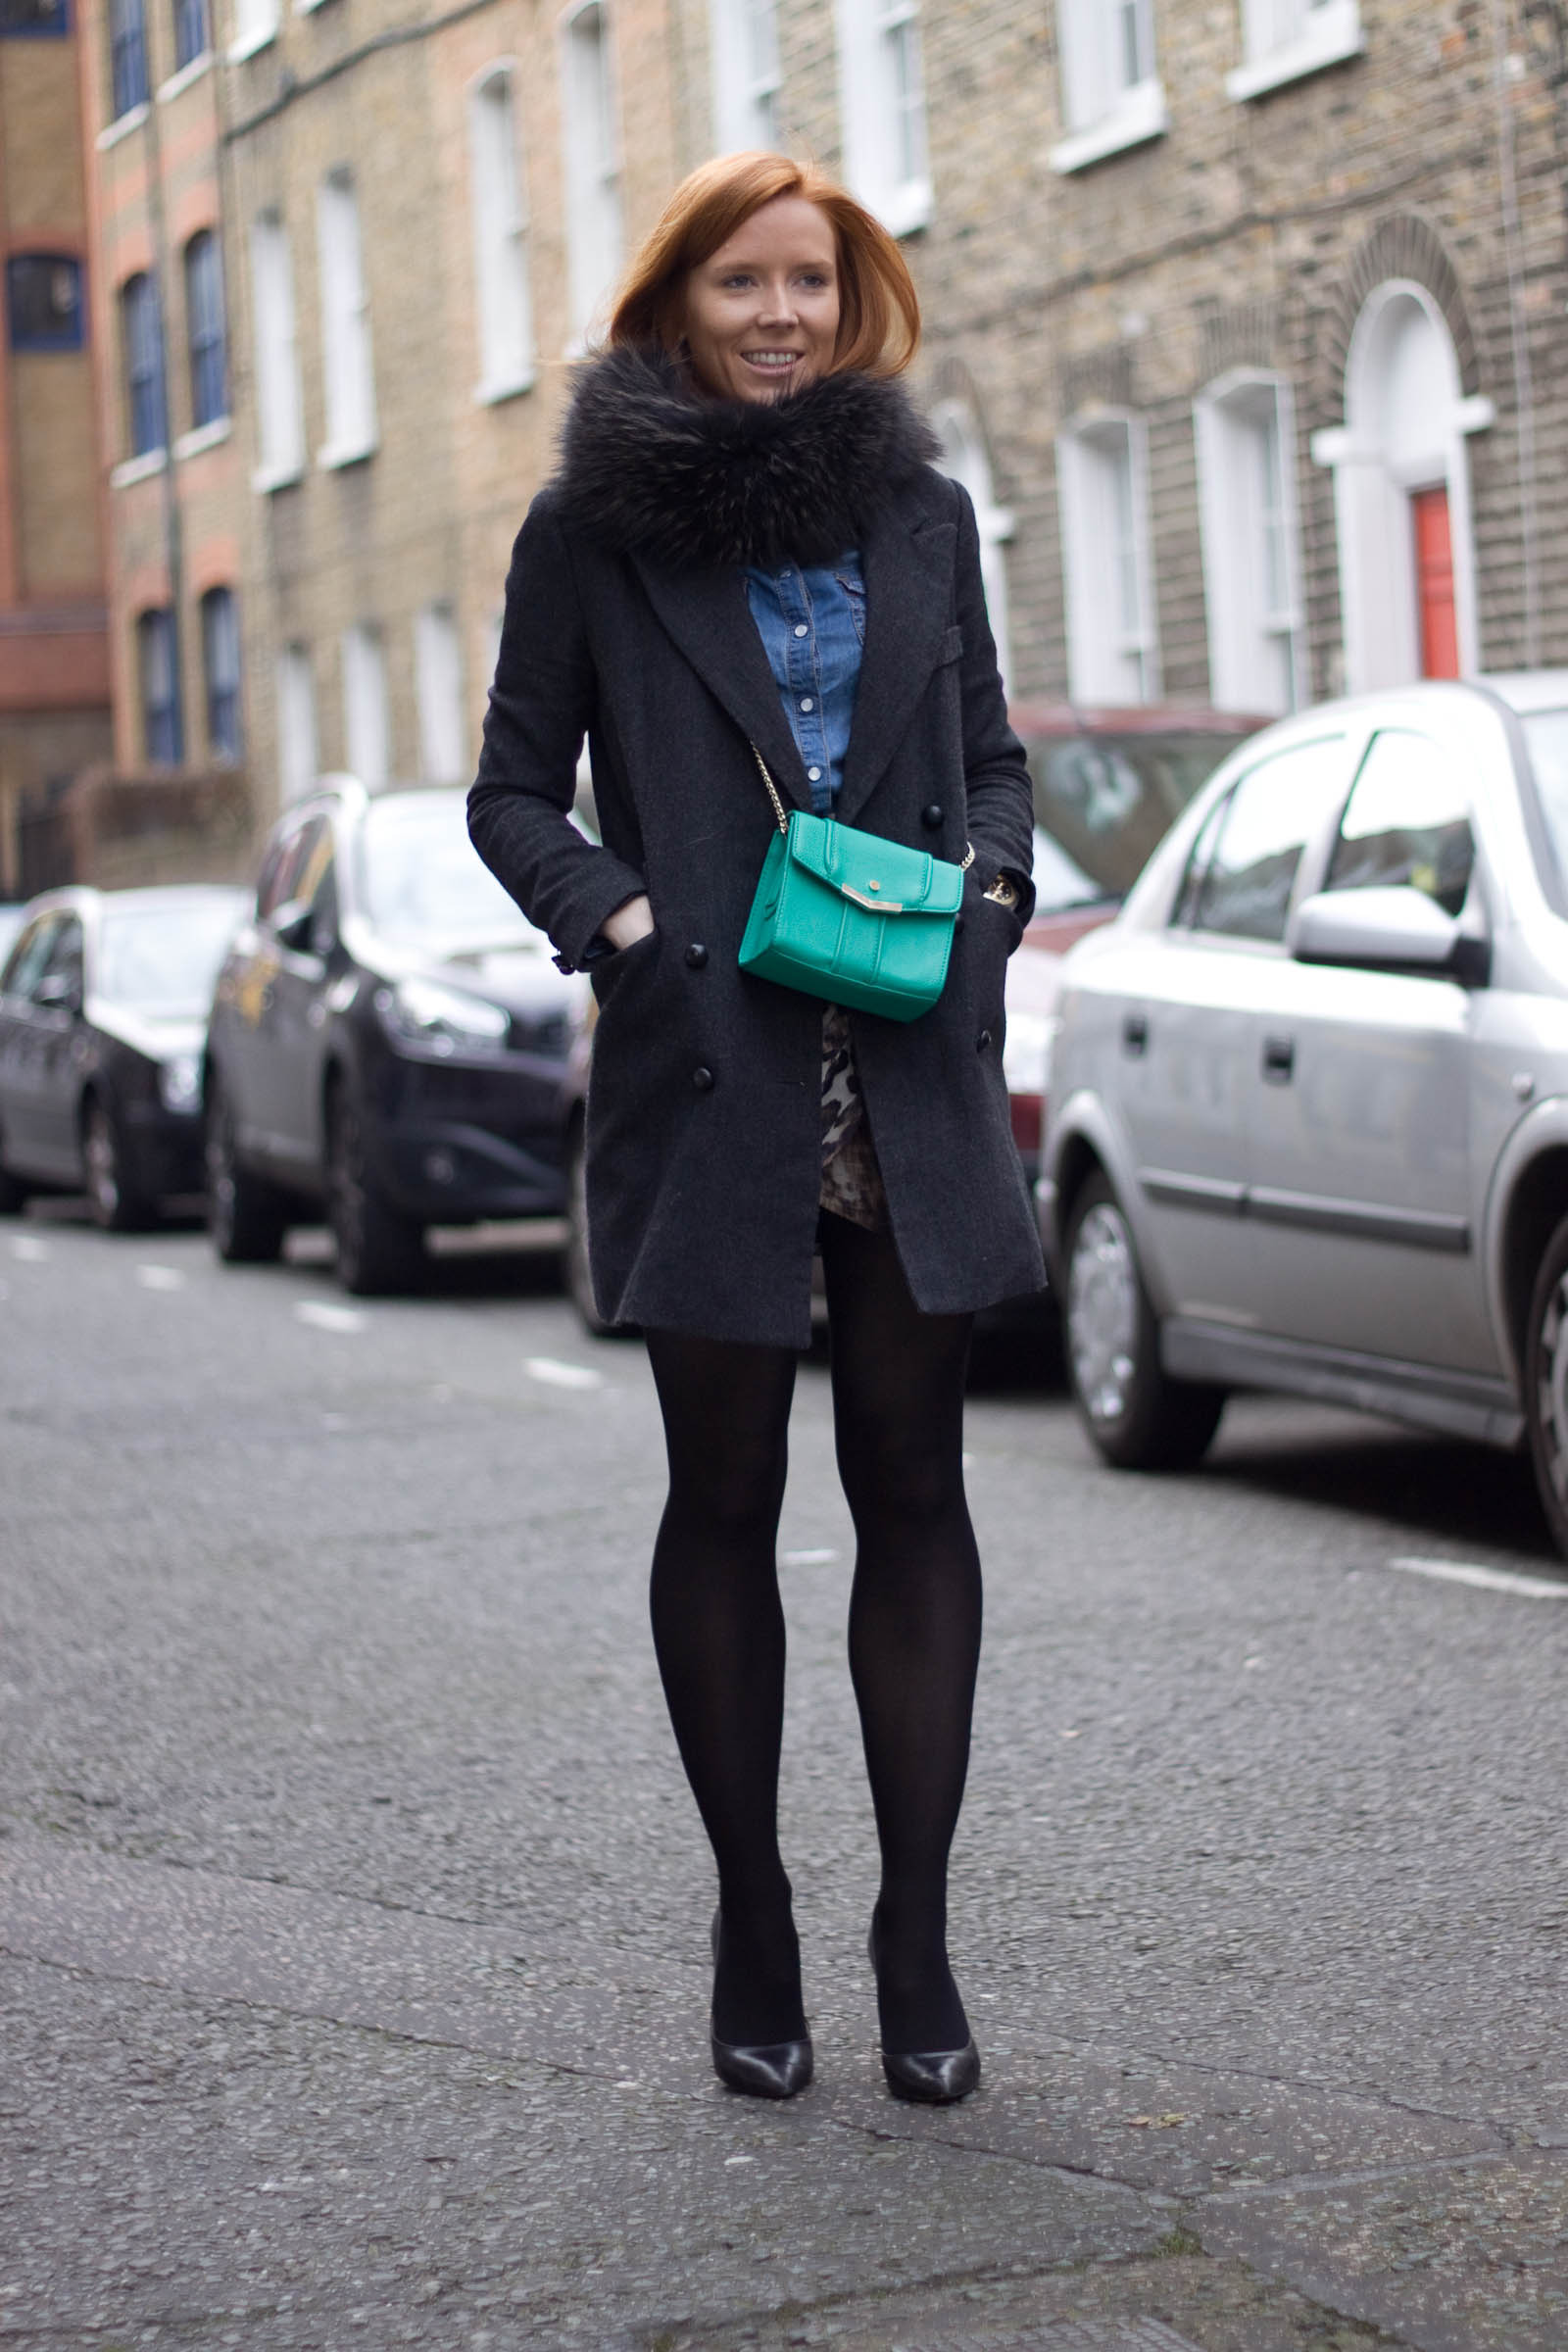 Asos Denim shirt - H&M leo skirt - YesStyle coat - Zara bag and heels - Gigue scarf